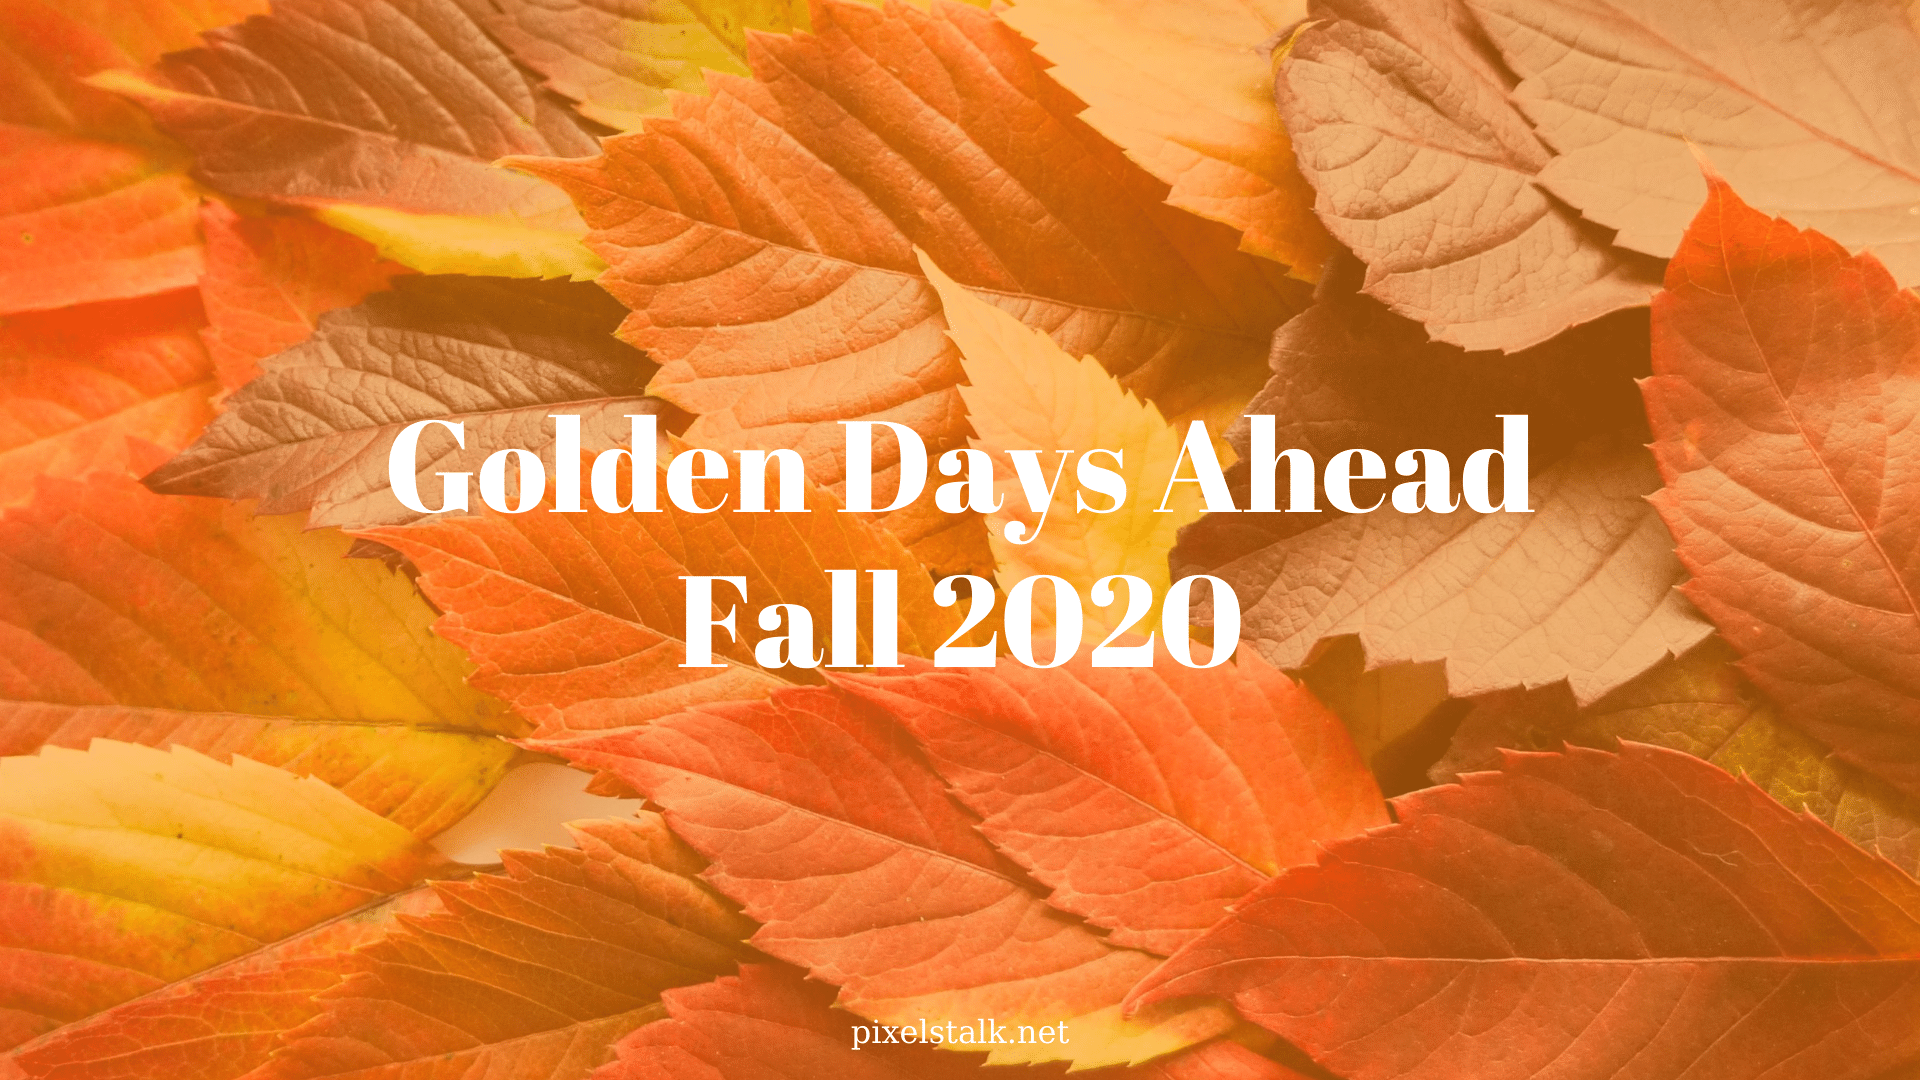 Best Fall 2020 Wallpapers free download for your desktop